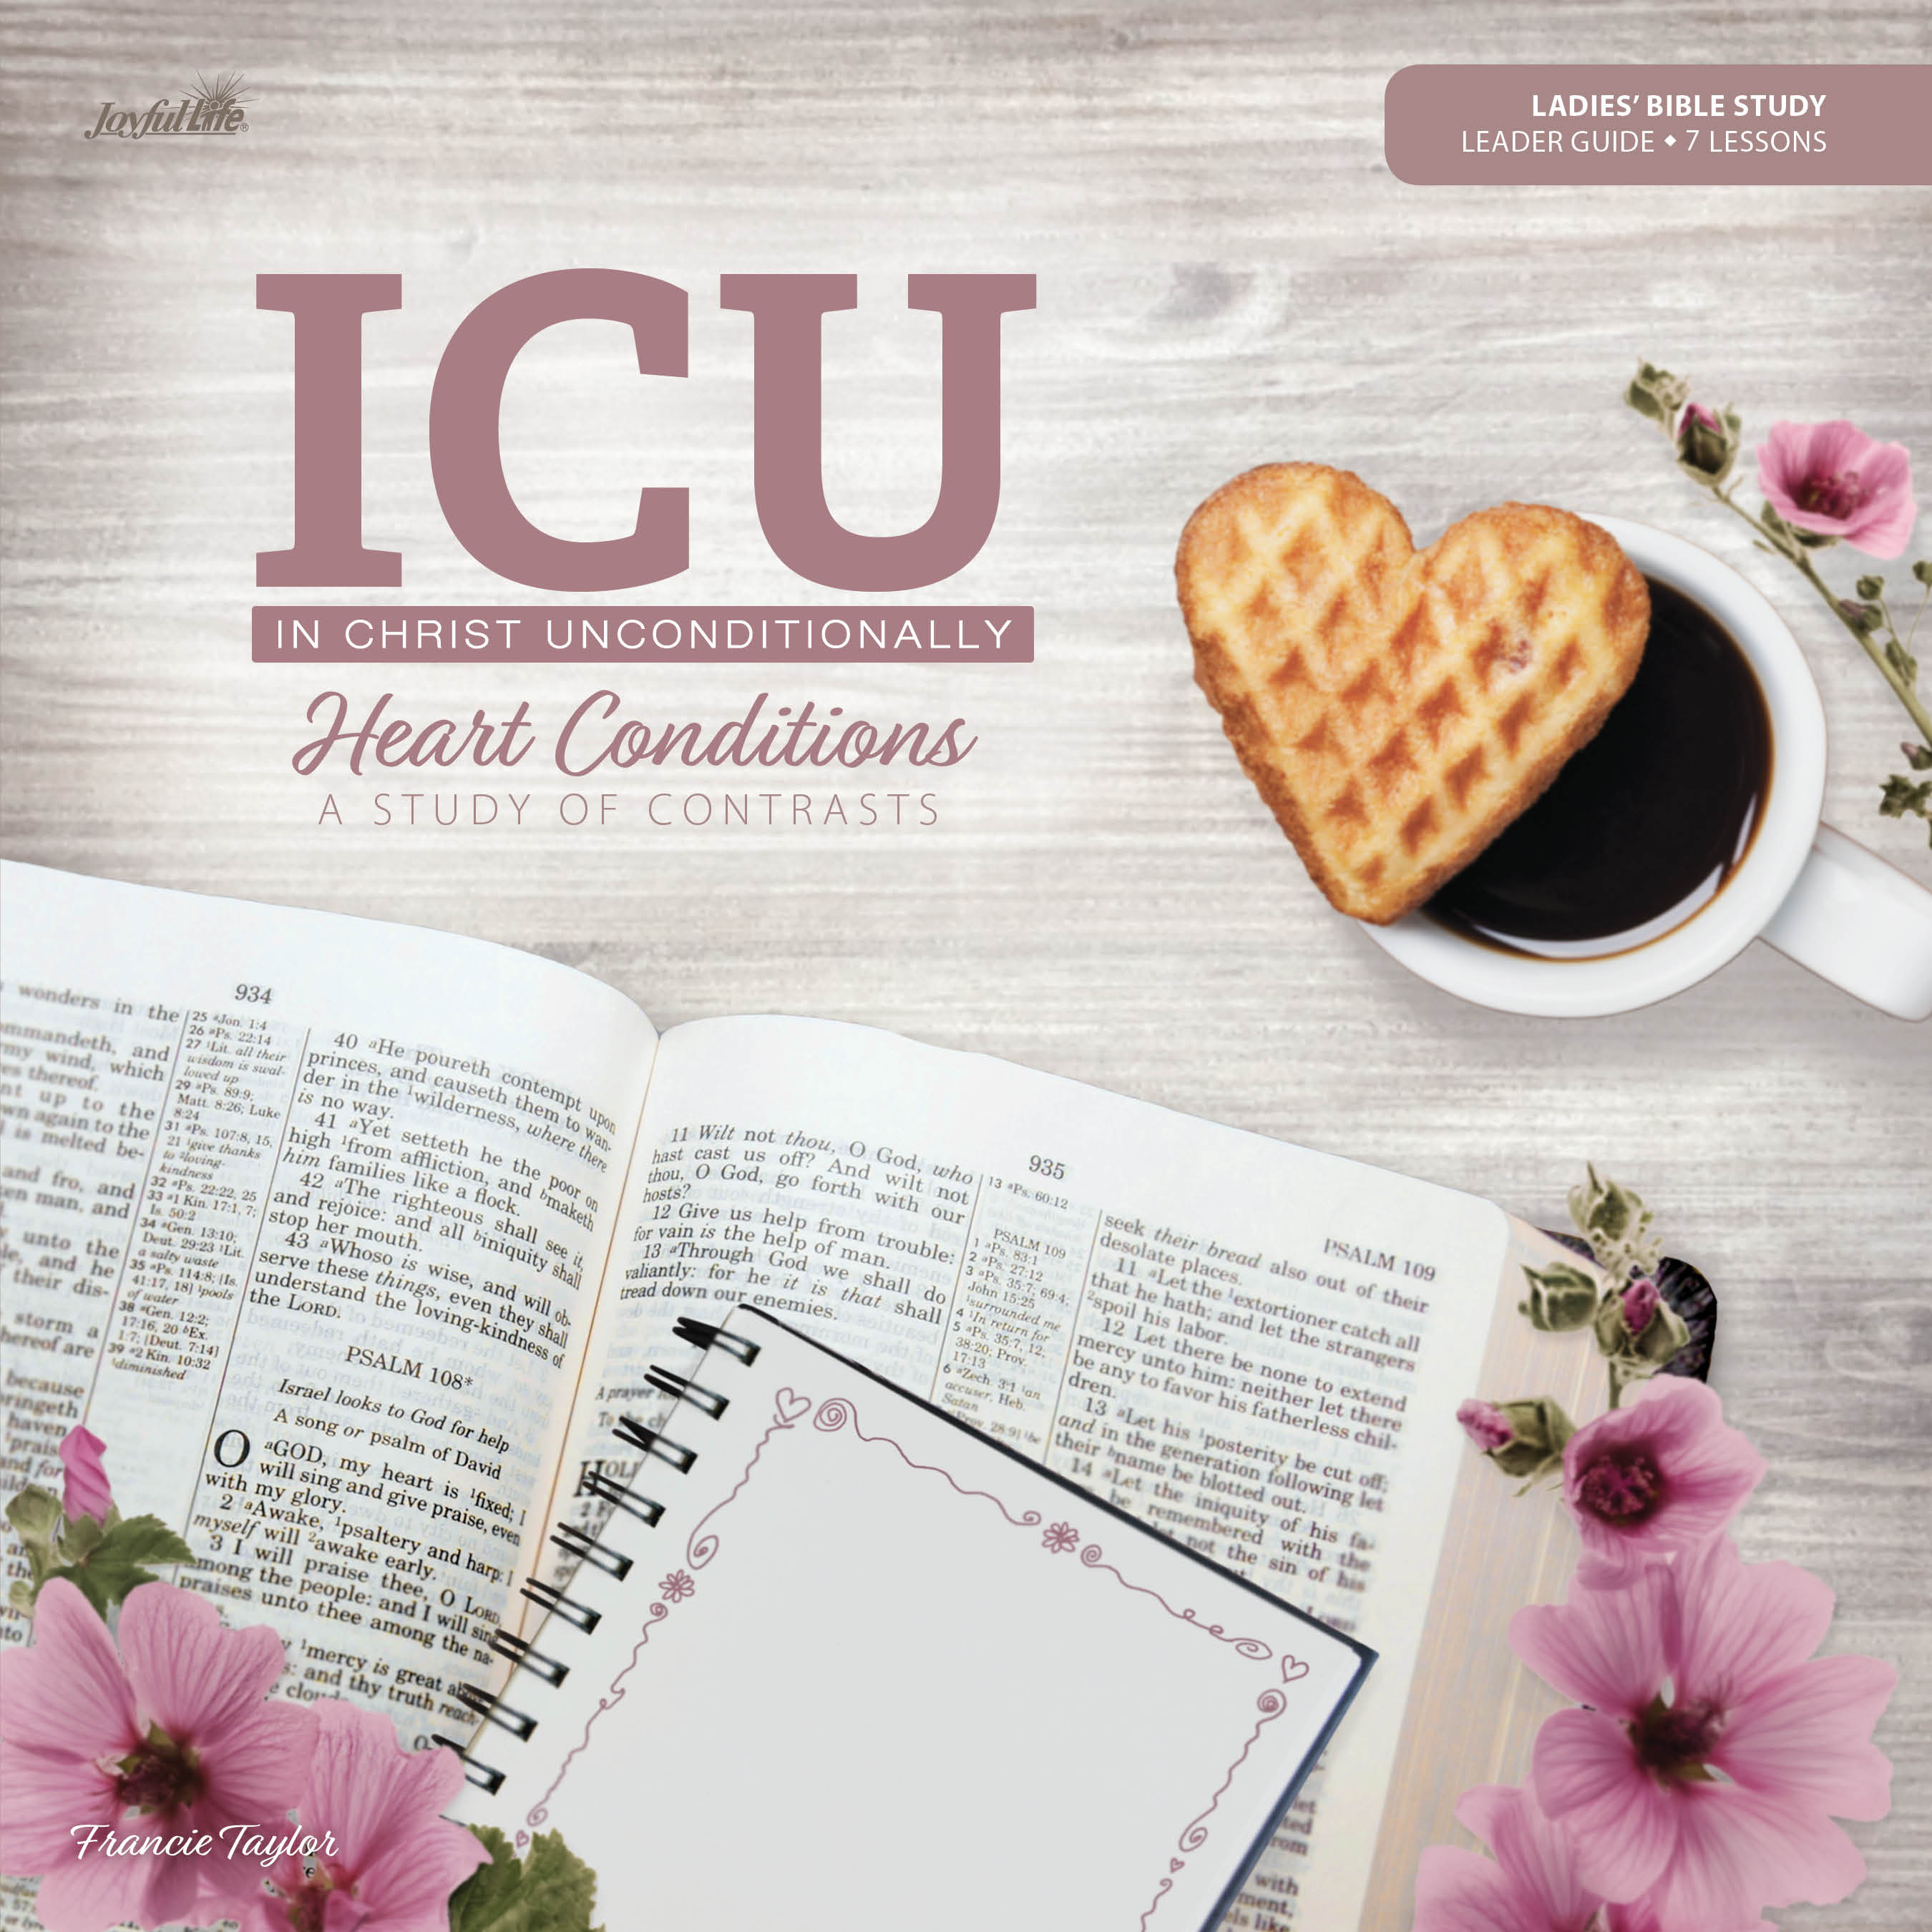 In Christ Unconditionally (ICU): Heart Conditions A Study of Contrast Leader Guide